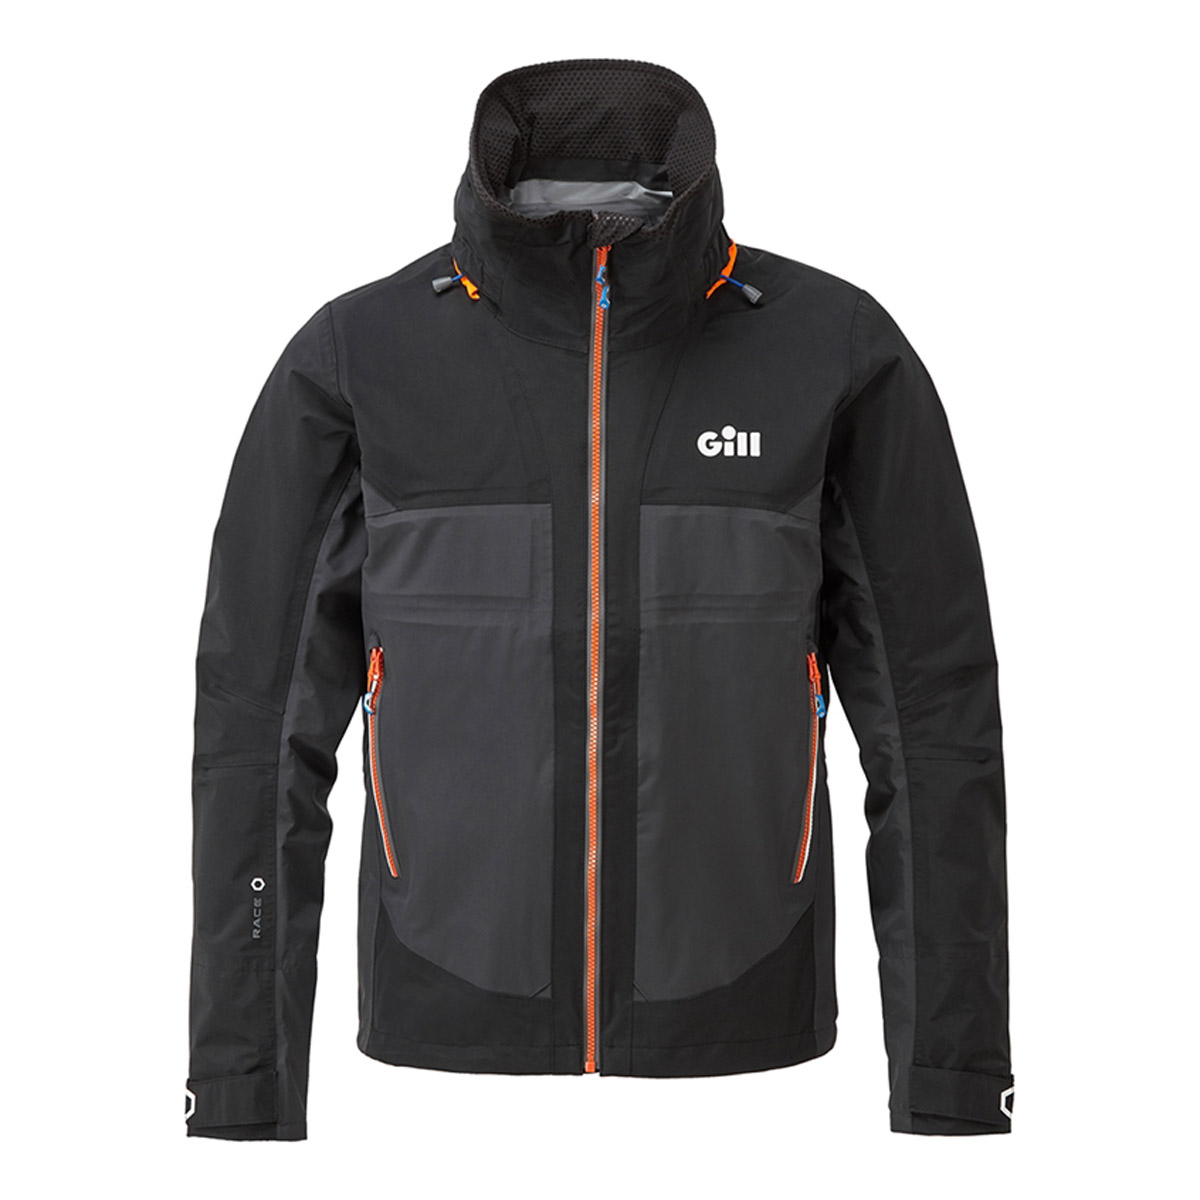 GILL RACE FUSION JACKET (RS23)